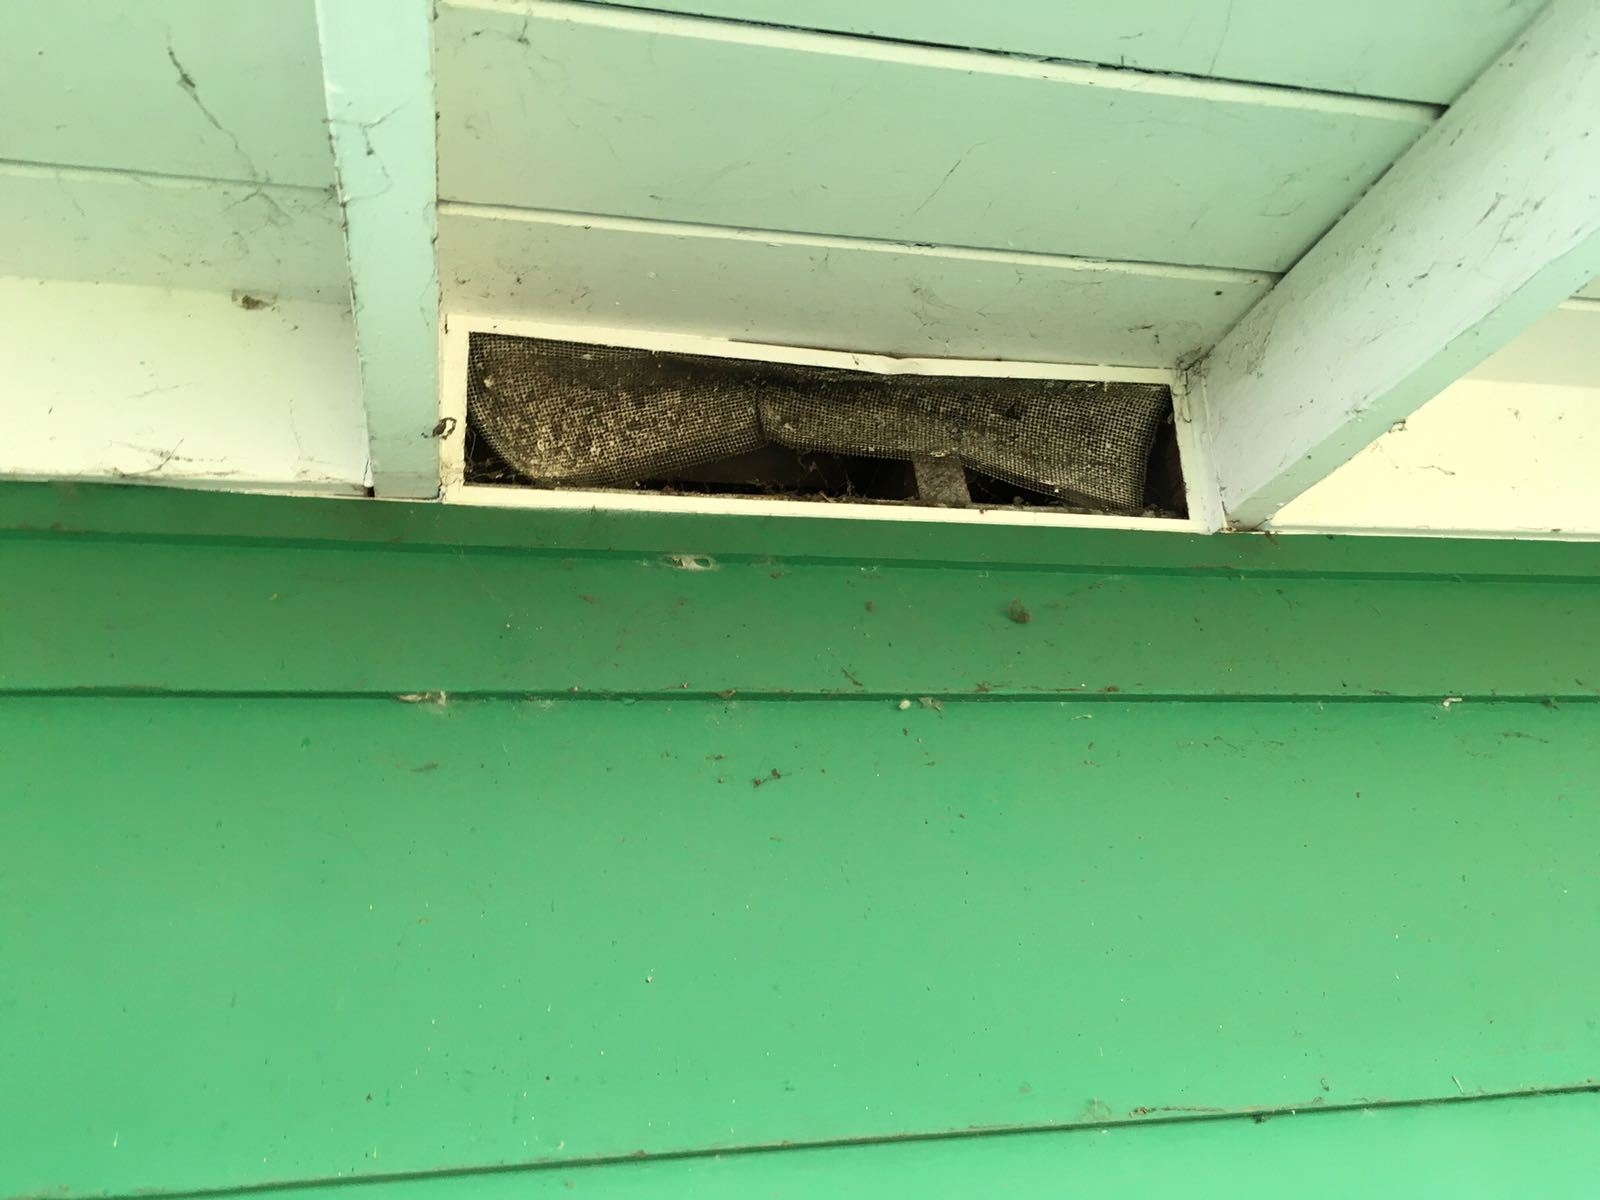 Rodent Solutions Pro - Rodent Proofing | Attic Insulation Removal Oakland, CA image 14